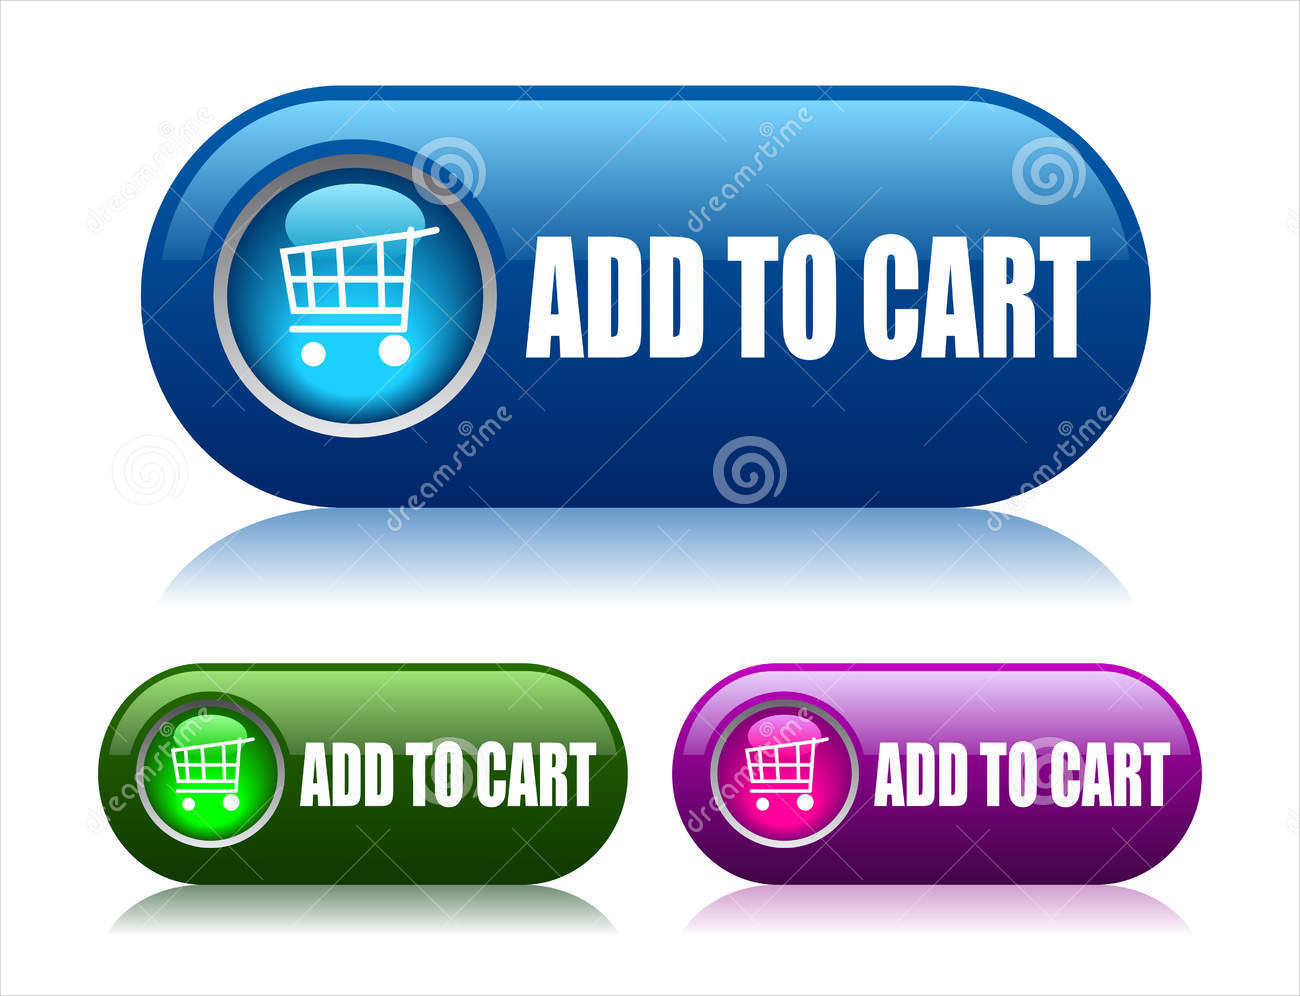 Add to Cart Buttons